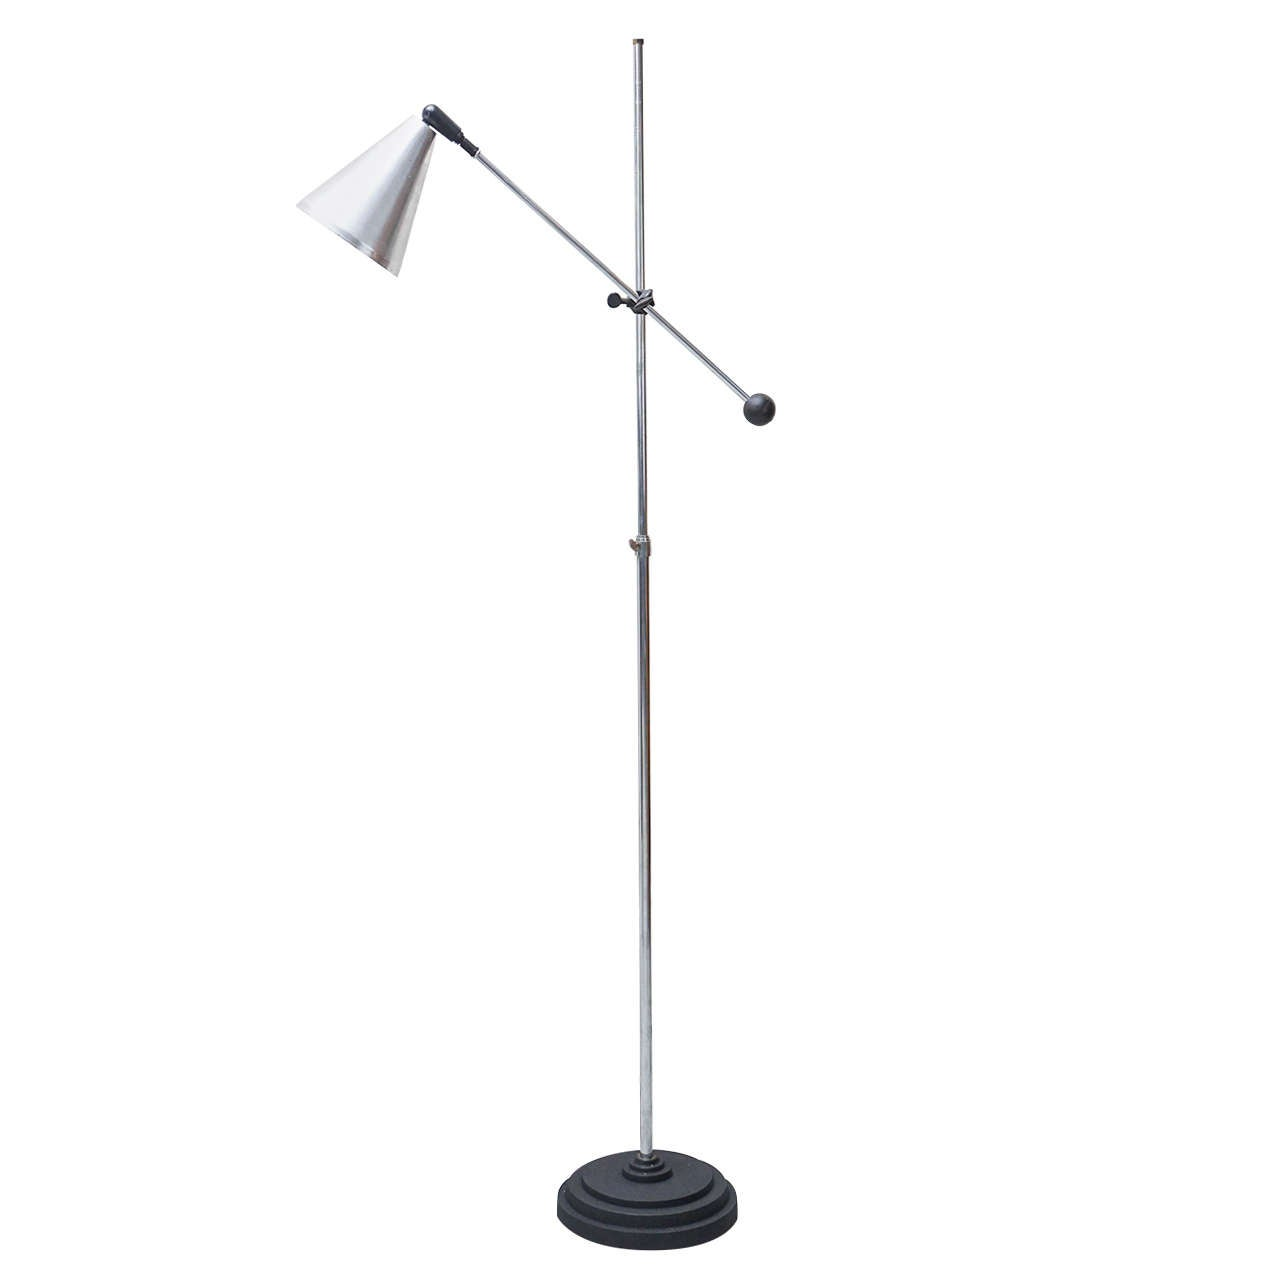 1960s industrial adjustable floor lamp for sale at 1stdibs for Monique 3 light adjustable floor lamp